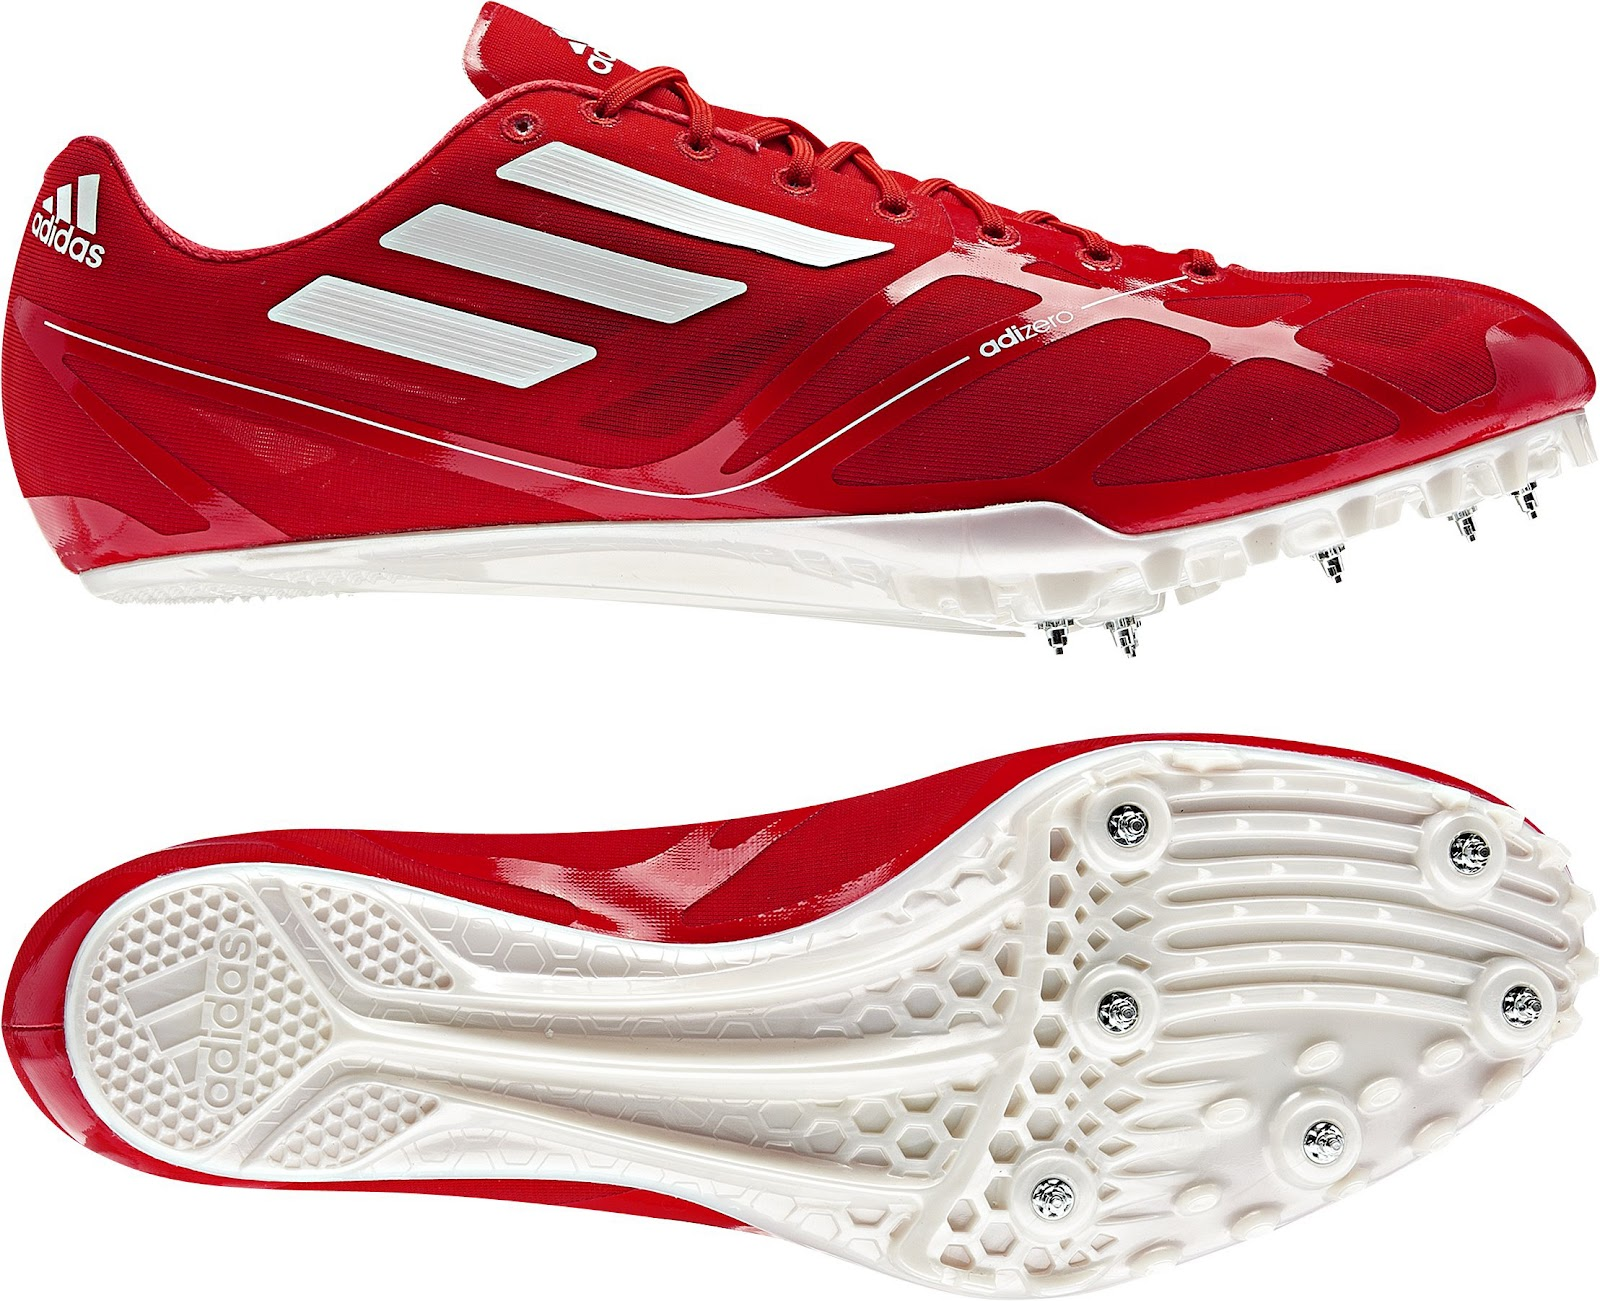 adidas track and field spikes 2012 | The Running Shoe Guru